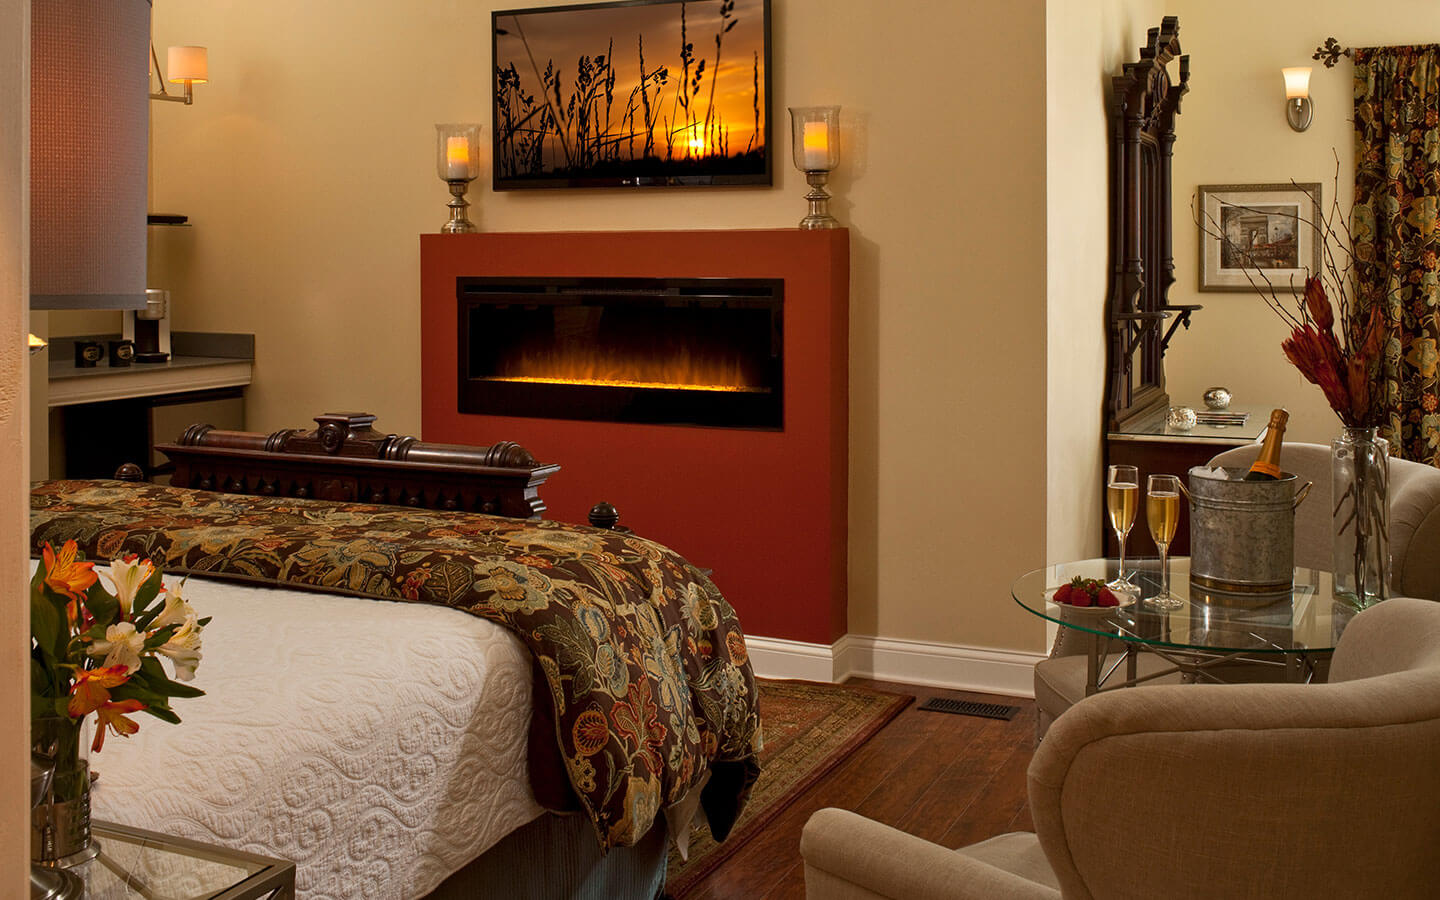 Camelot Suite with fireplace